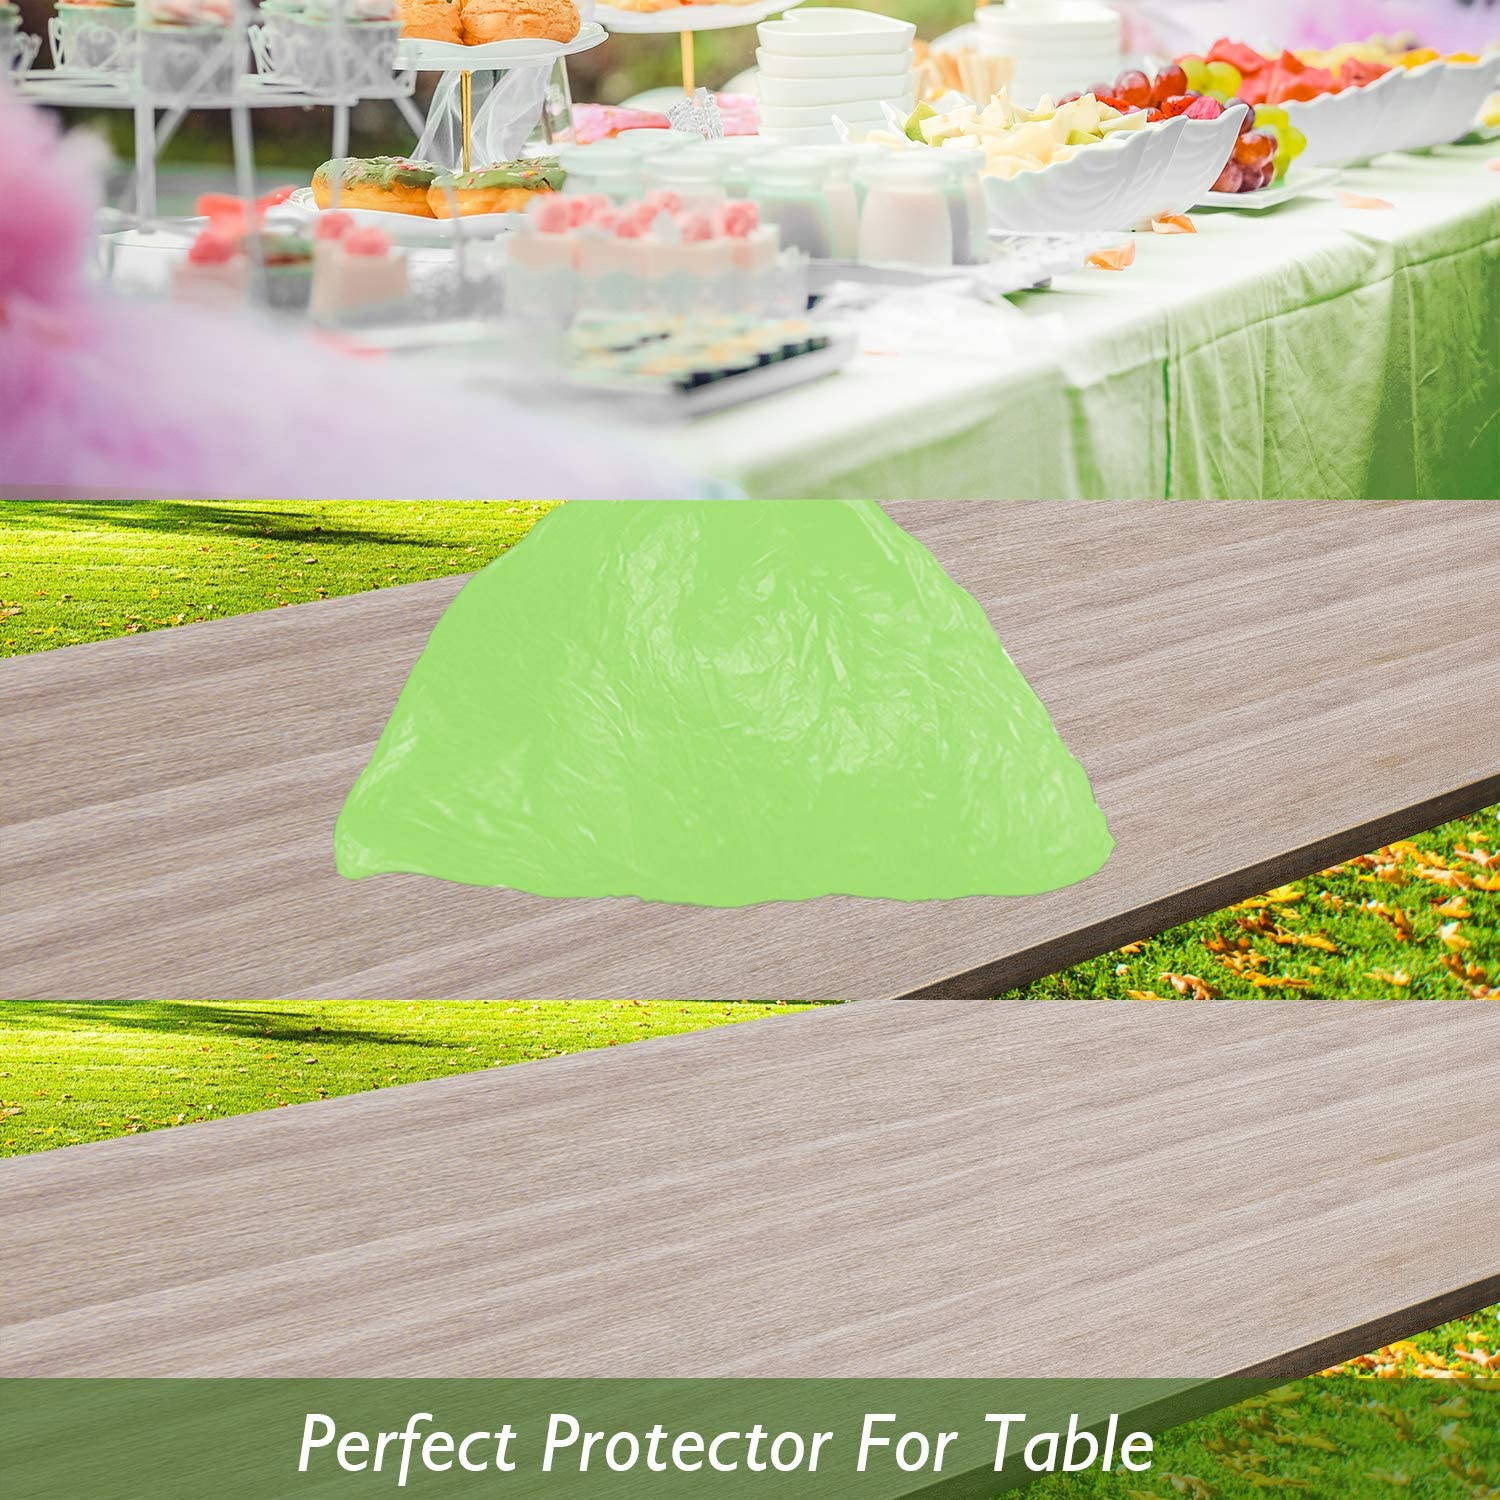 Black Plastic Tablecloths for Rectangle Tables 3 Pack 54 x 108 Party Table Cloths Disposable for 6 to 8 Foot Tables Indoor or Outdoor Parties Birthdays Weddings Christmas Anniversary Buffet Table